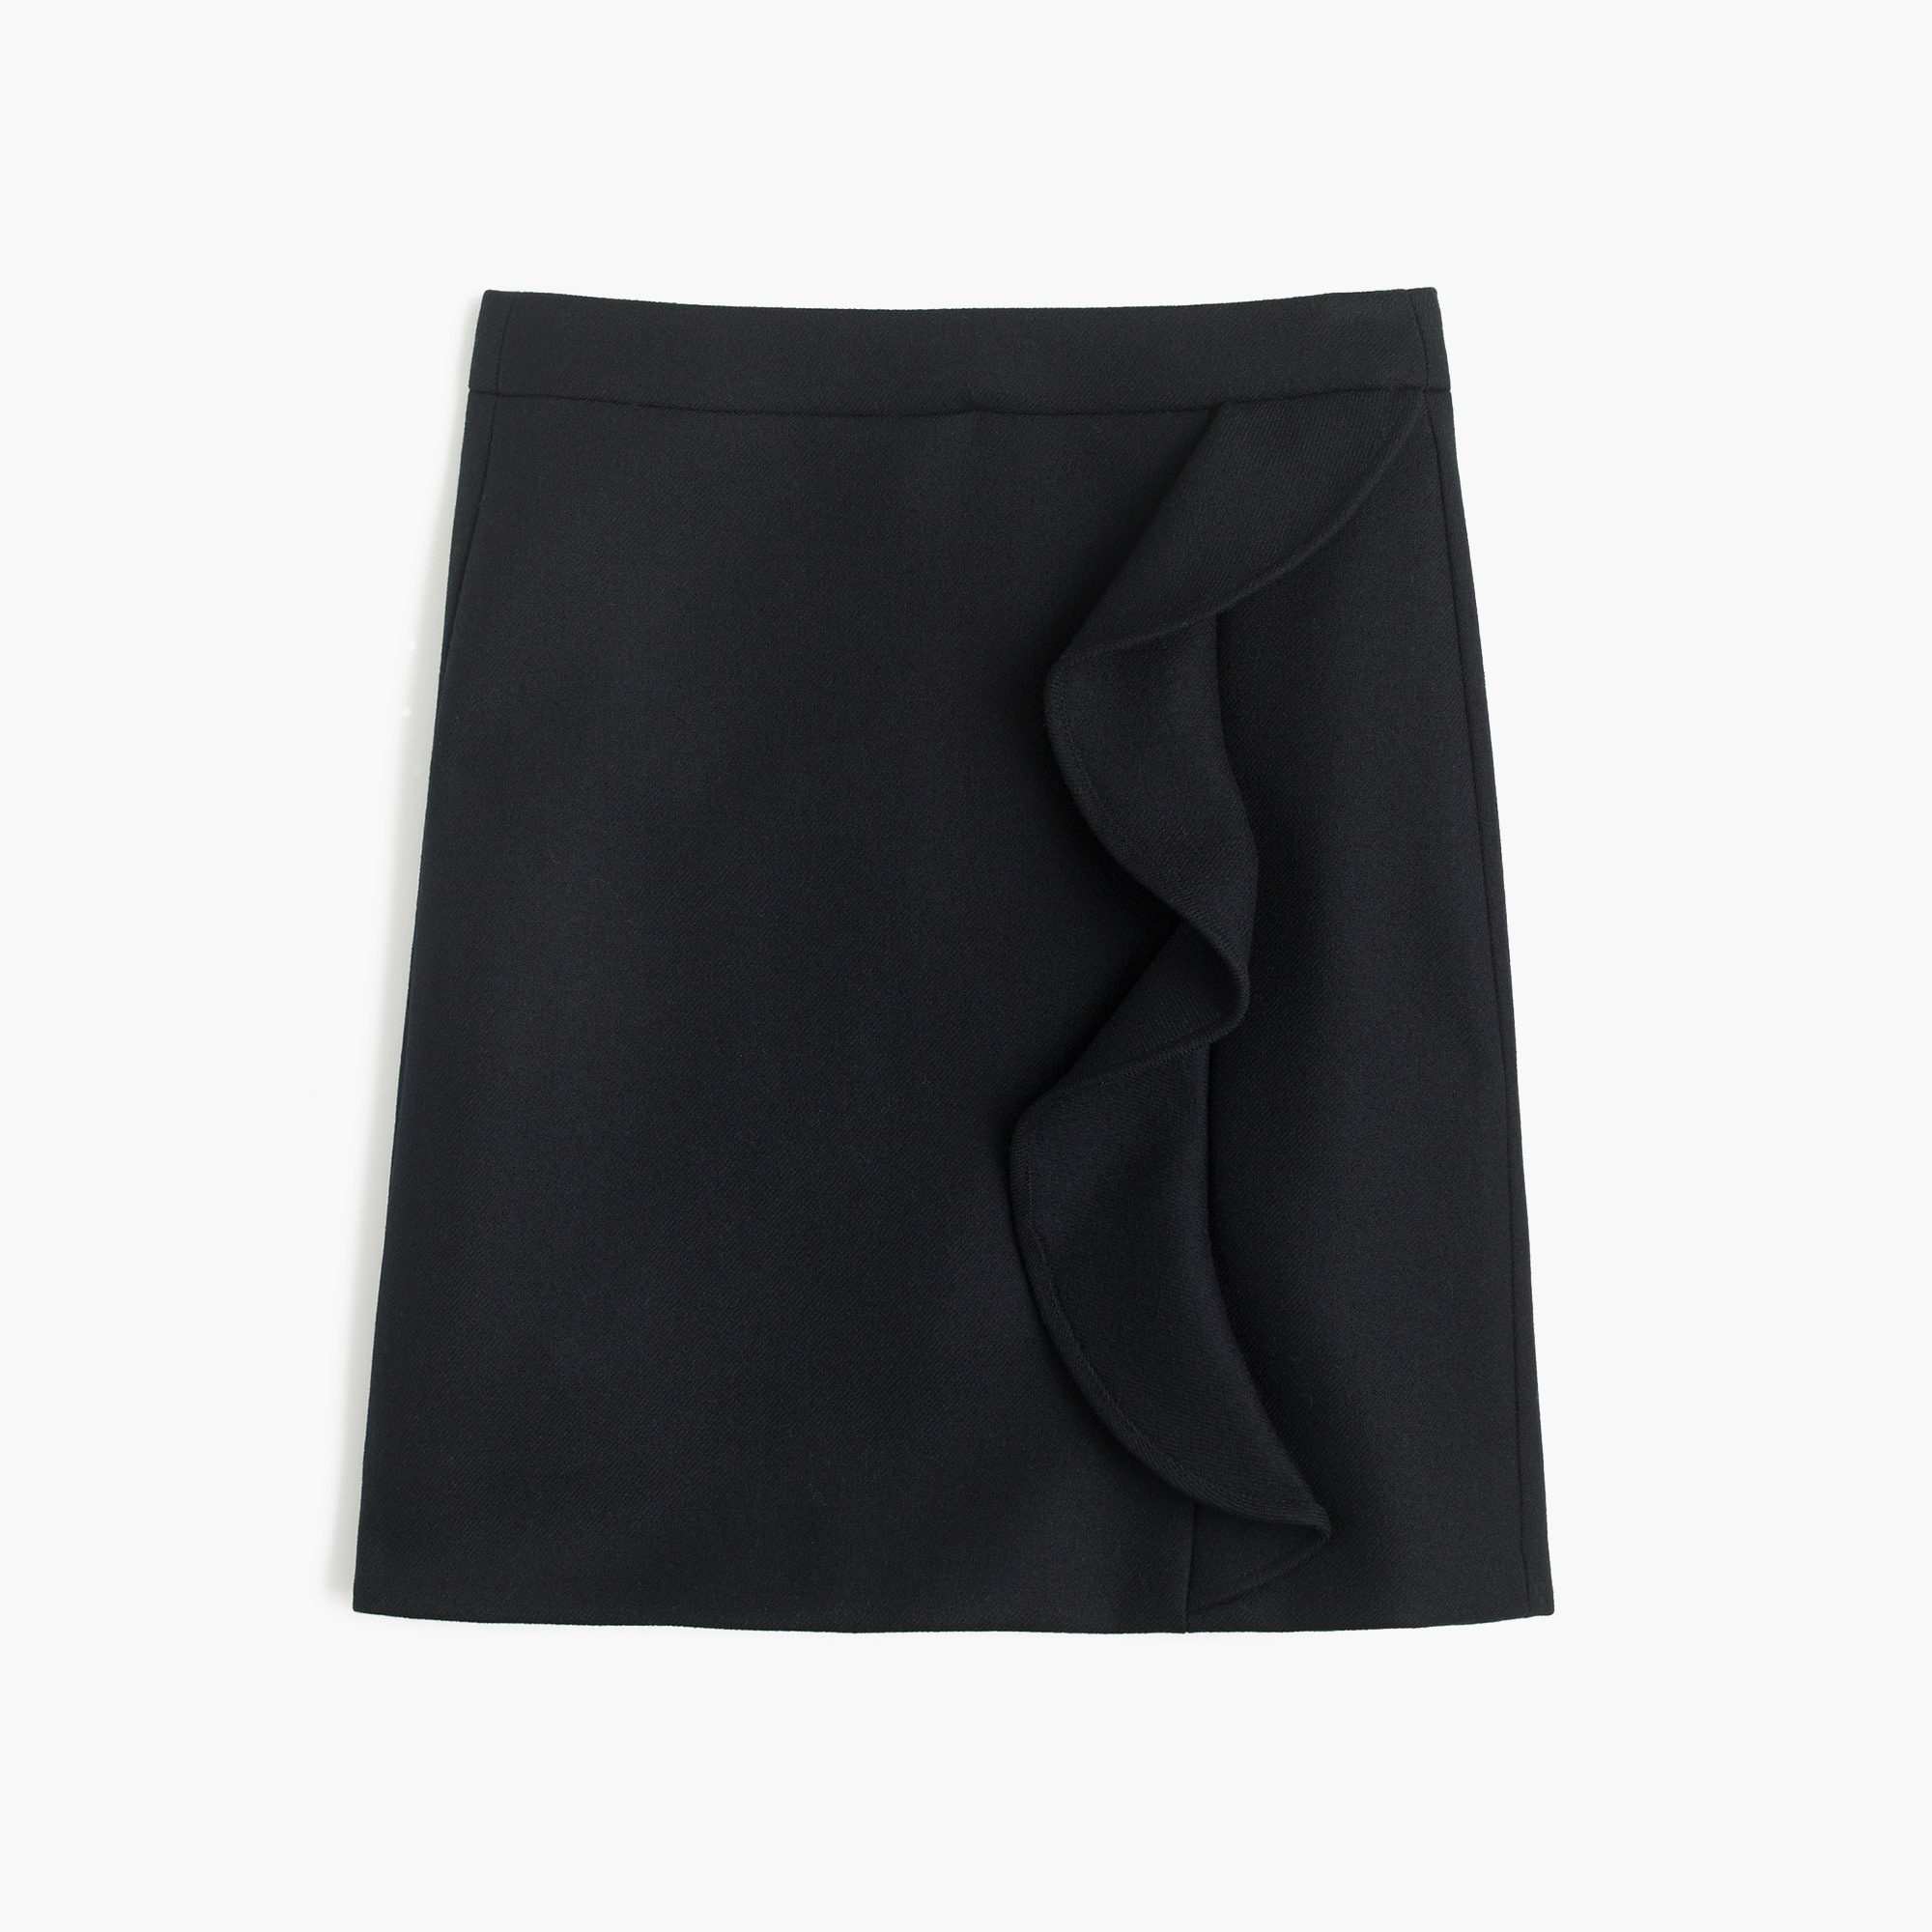 Image 2 for Ruffle mini skirt in double-serge wool